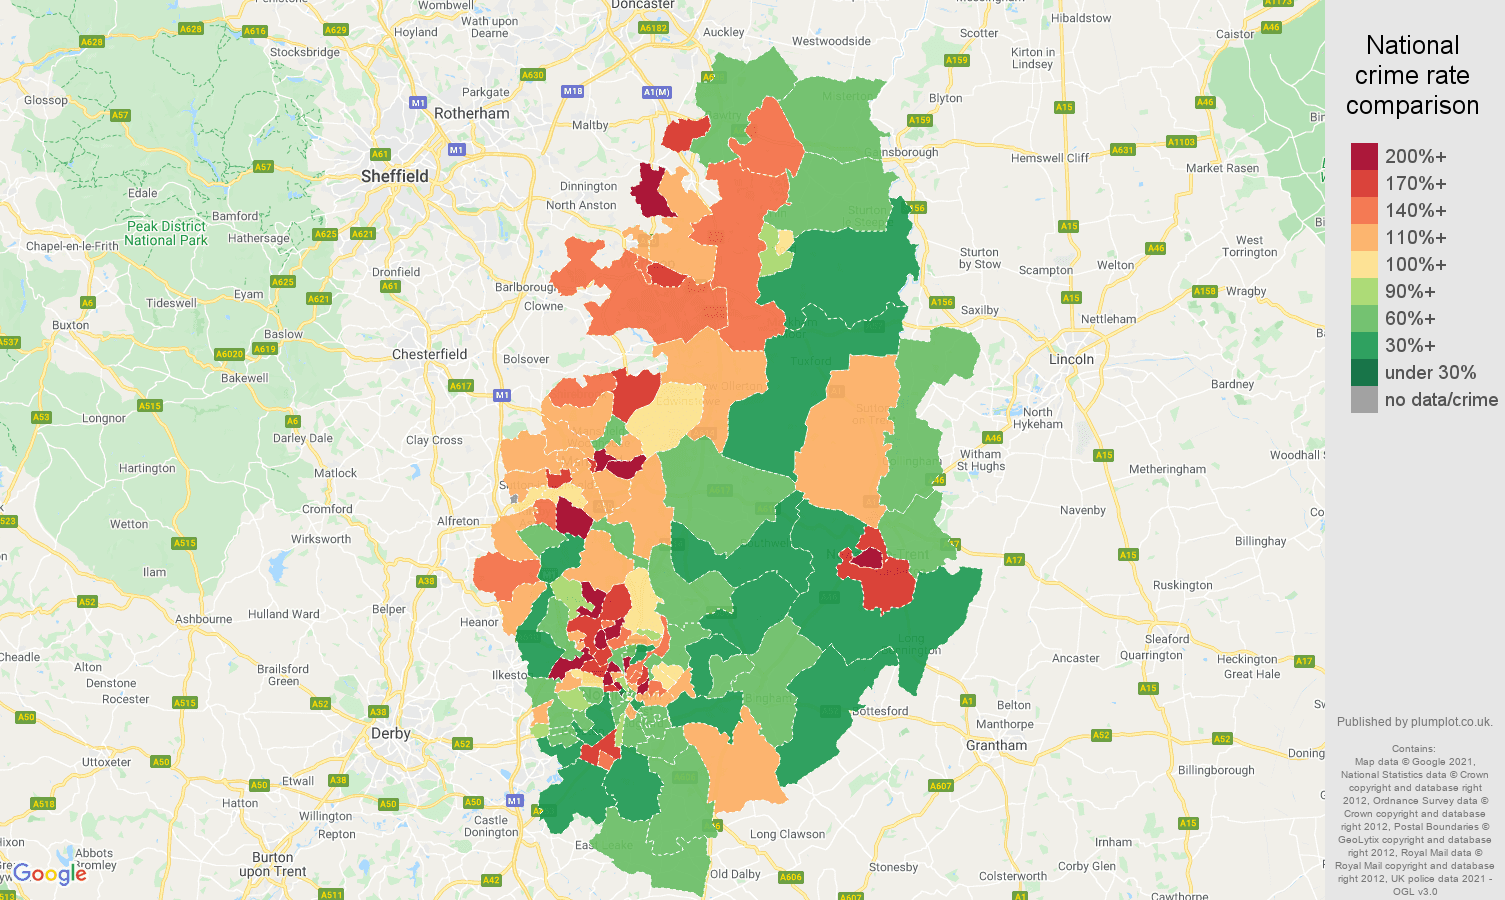 Nottinghamshire criminal damage and arson crime rate comparison map